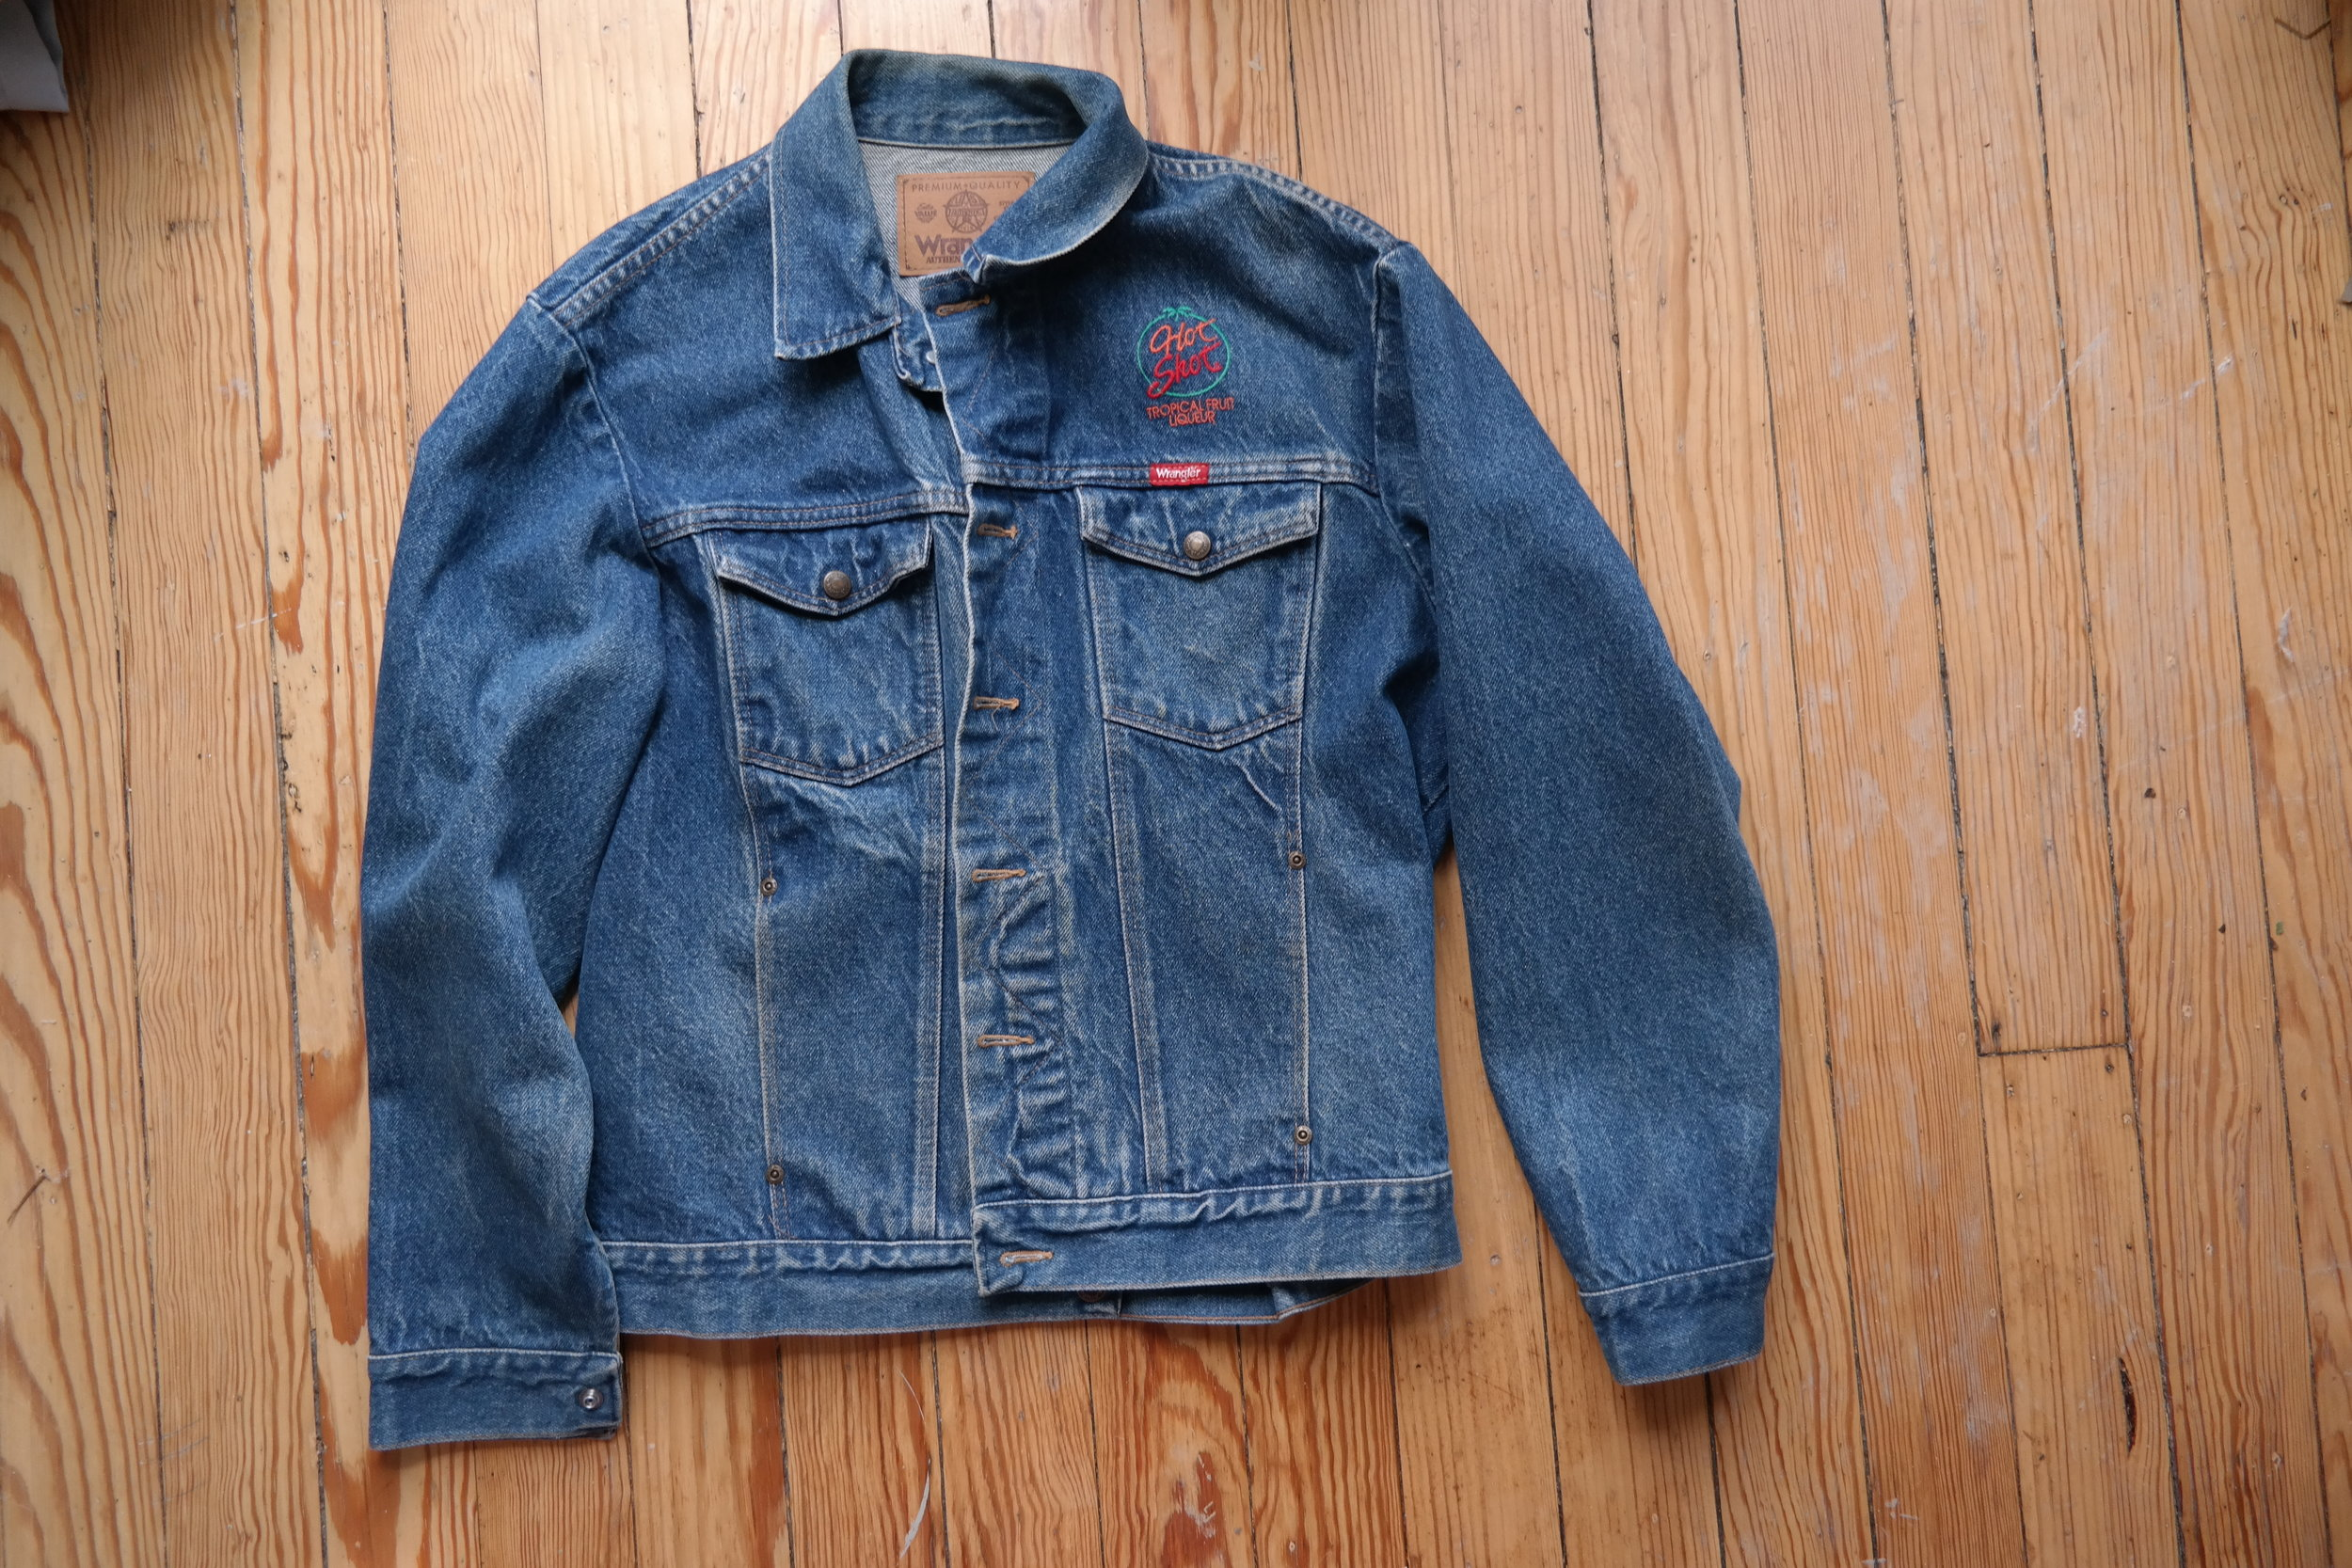 Vintage Wrangler with fun embroidery